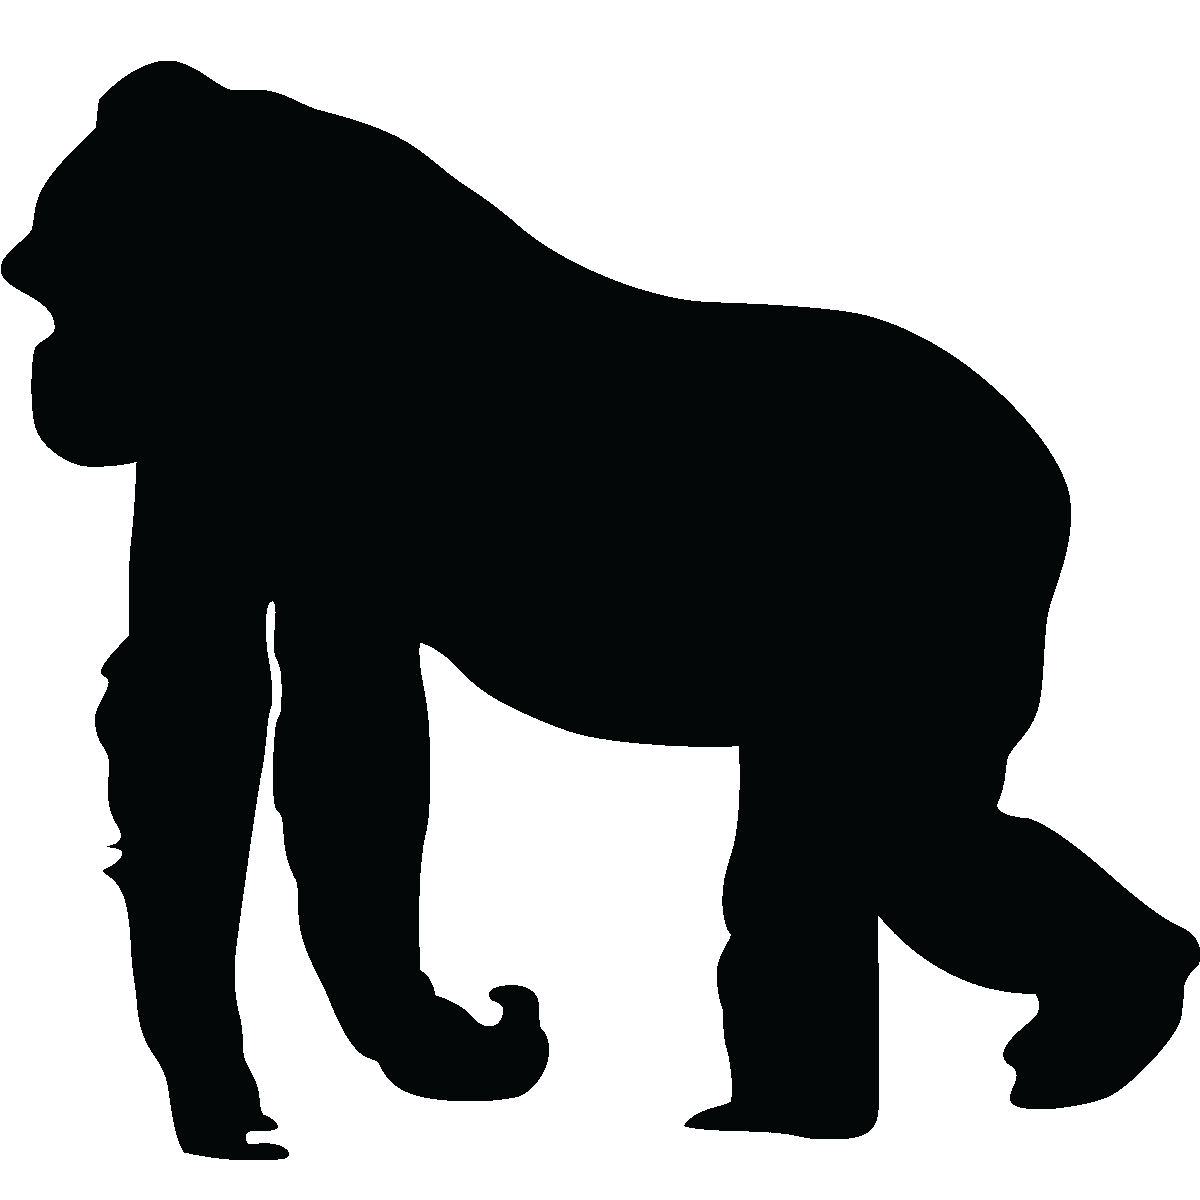 clipart free stock Gorilla clipart ivan. Shadow free on dumielauxepices